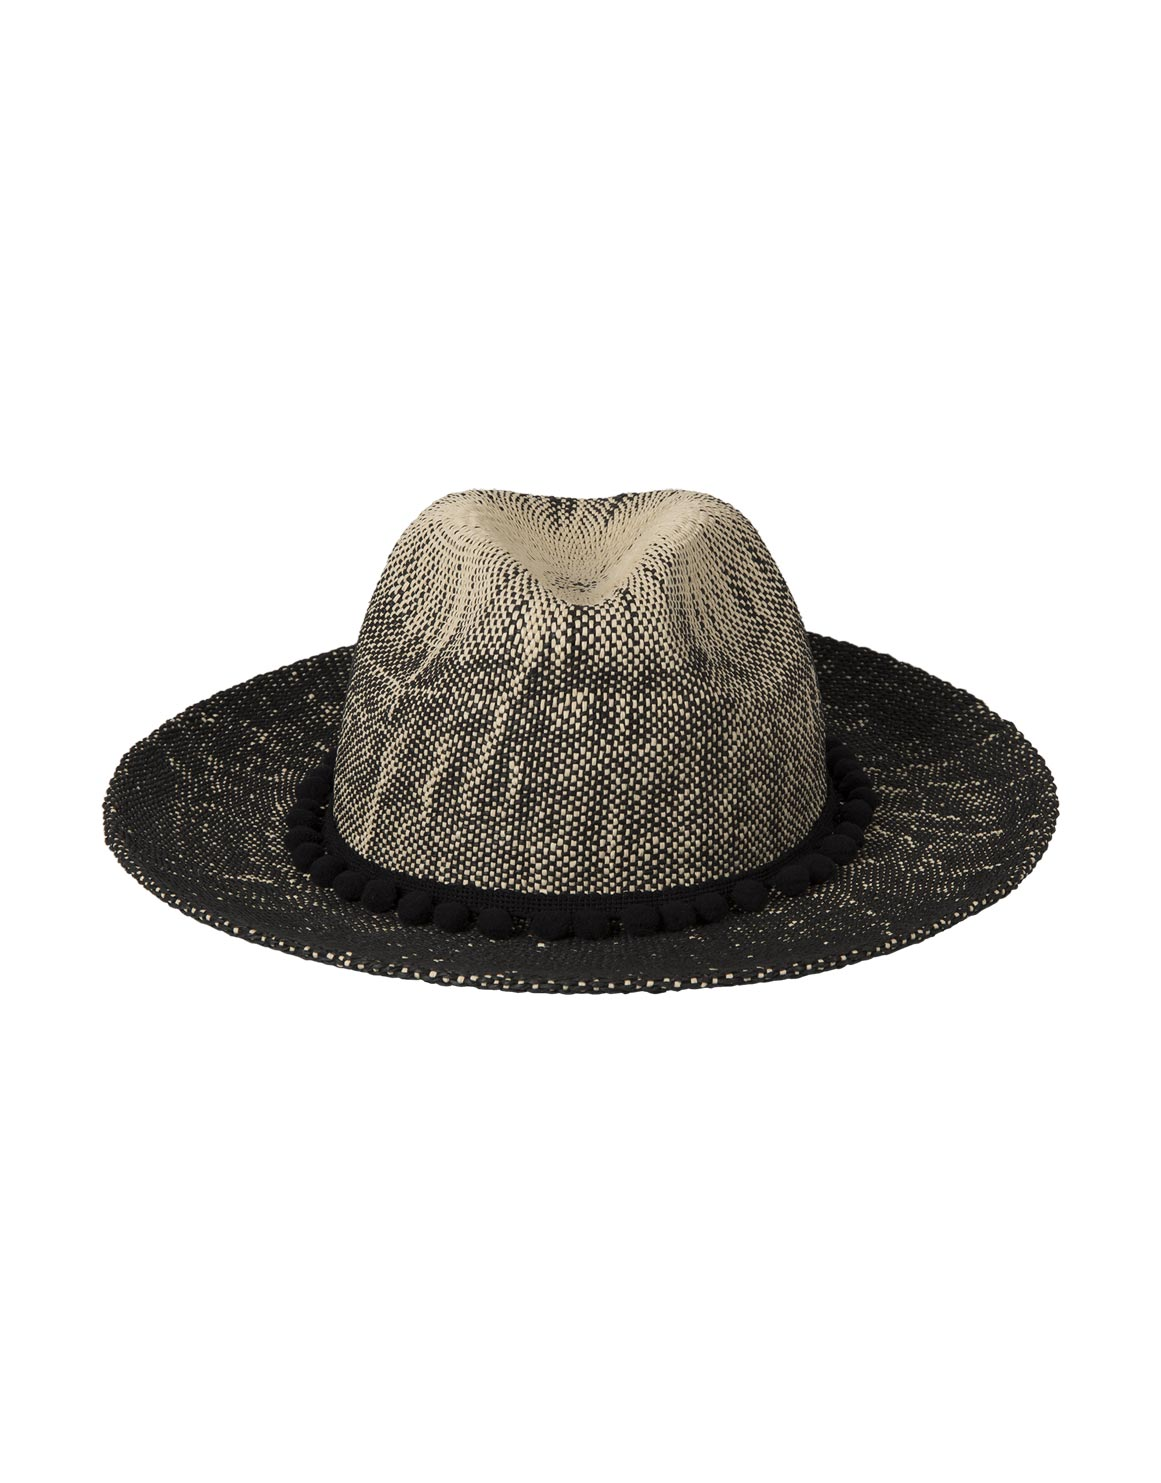 300db16e901 Stetson Hats For Sale In Durban - Parchment N Lead